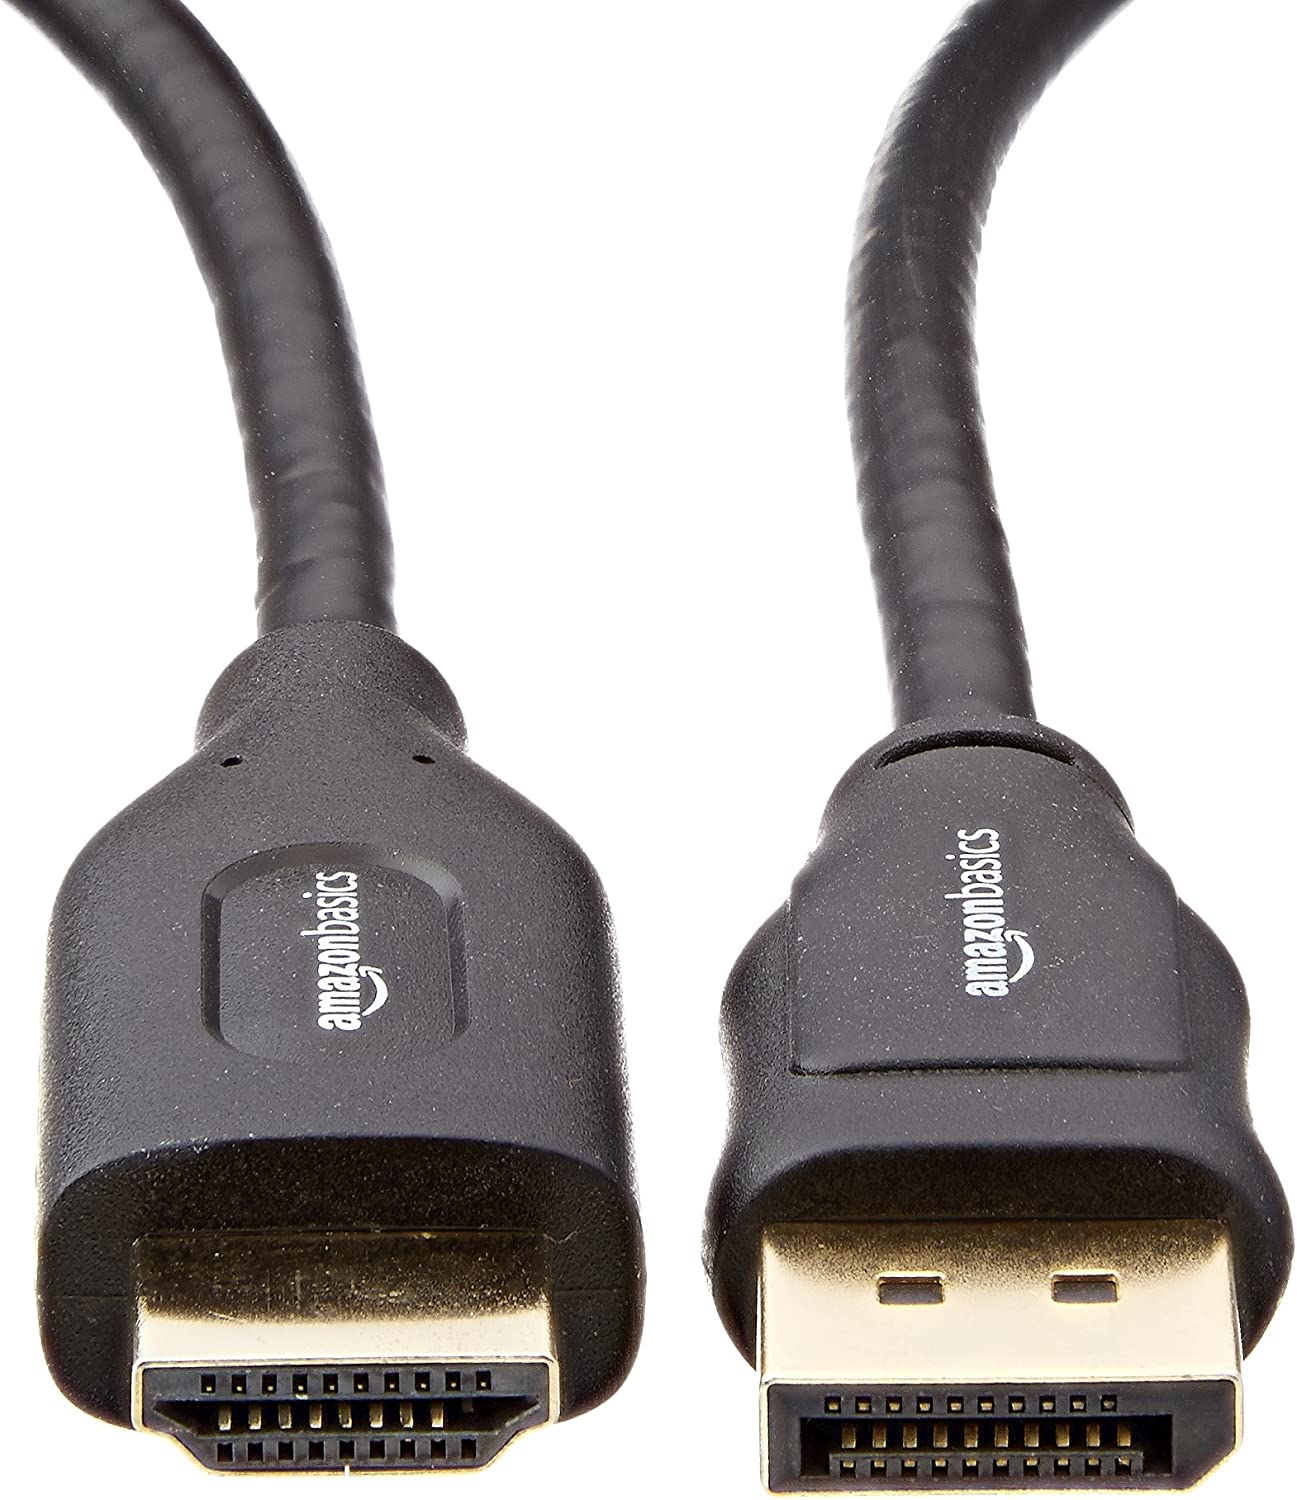 Basics Mini DisplayPort to HDMI Display Adapter Cable 6 Feet